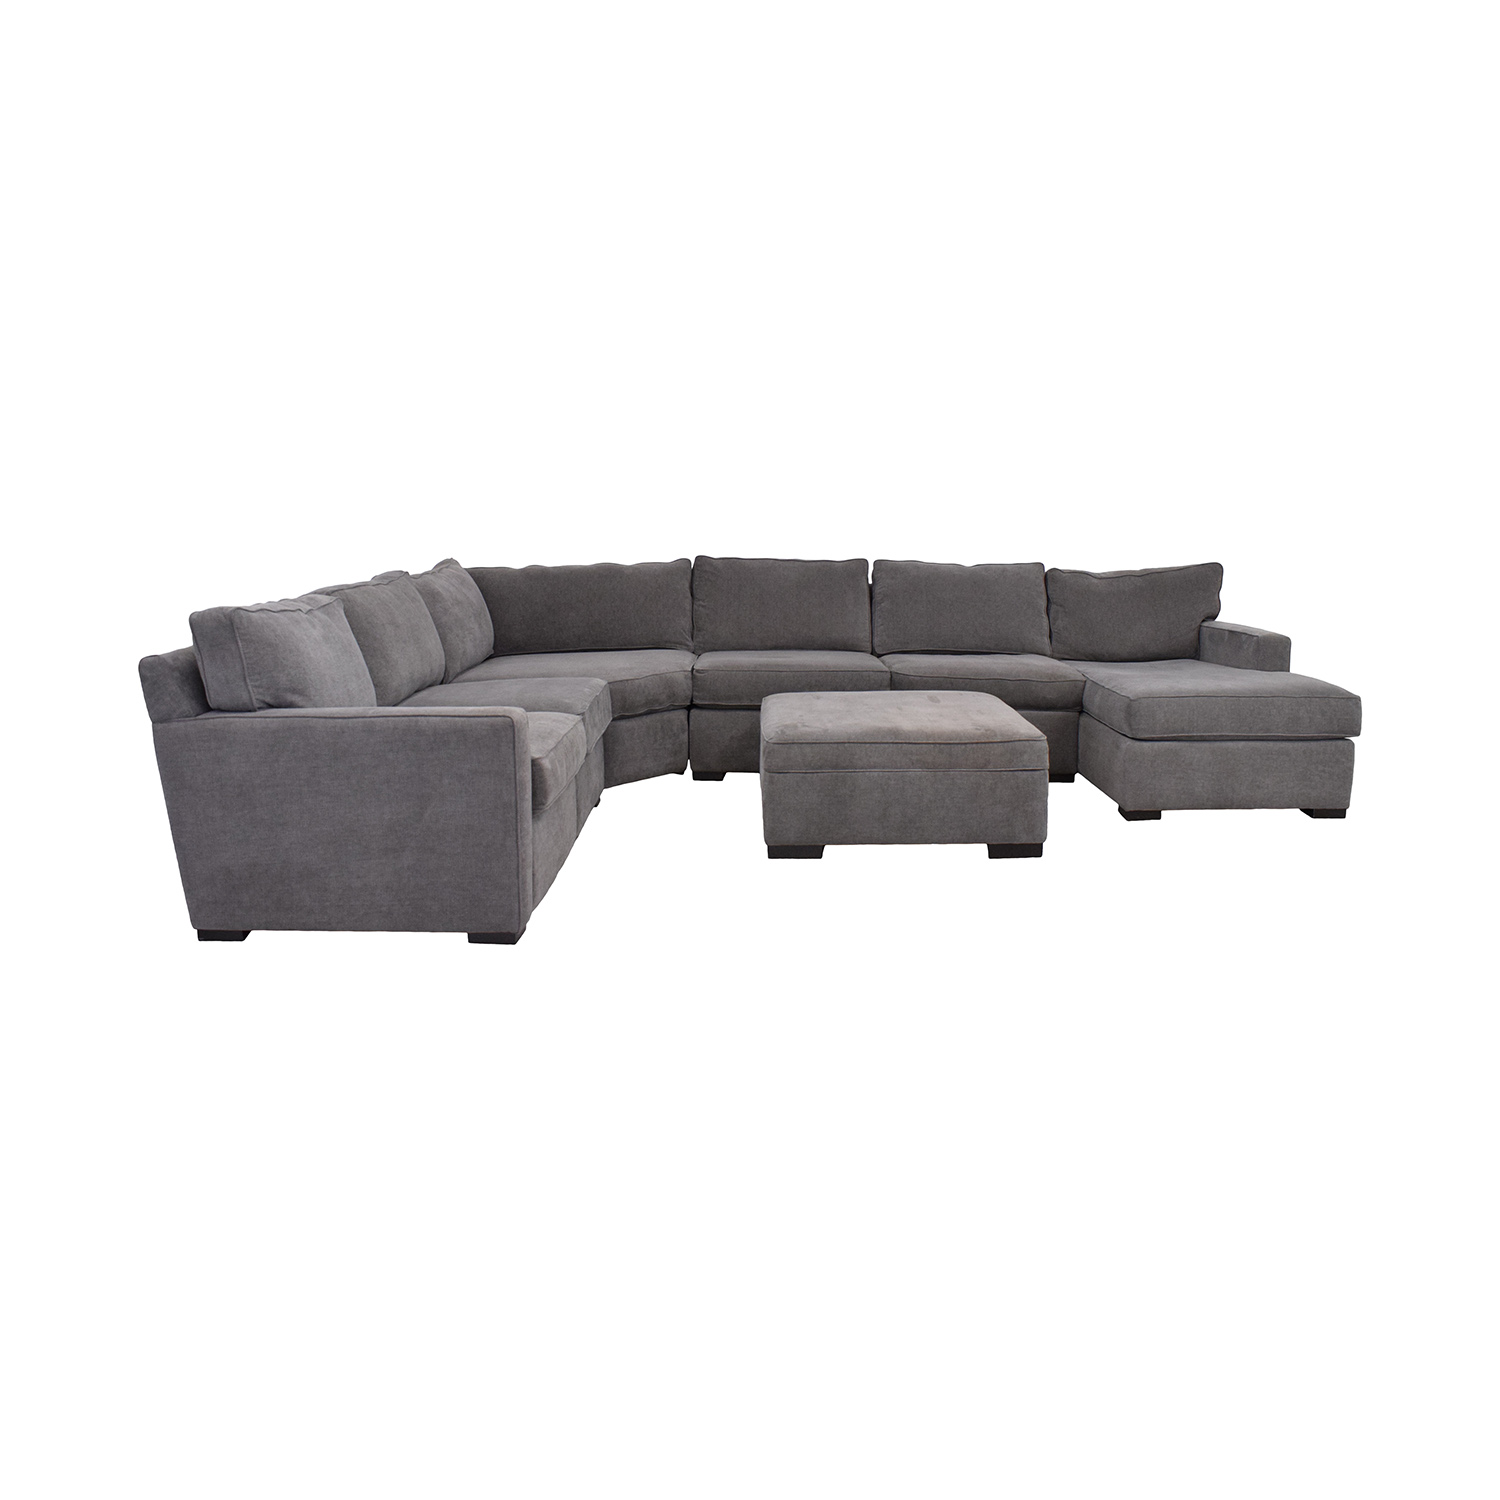 Macy's Macy's Radley Fabric 6-Piece Chaise Sectional Sofa with Corner Piece and Ottoman Sofas